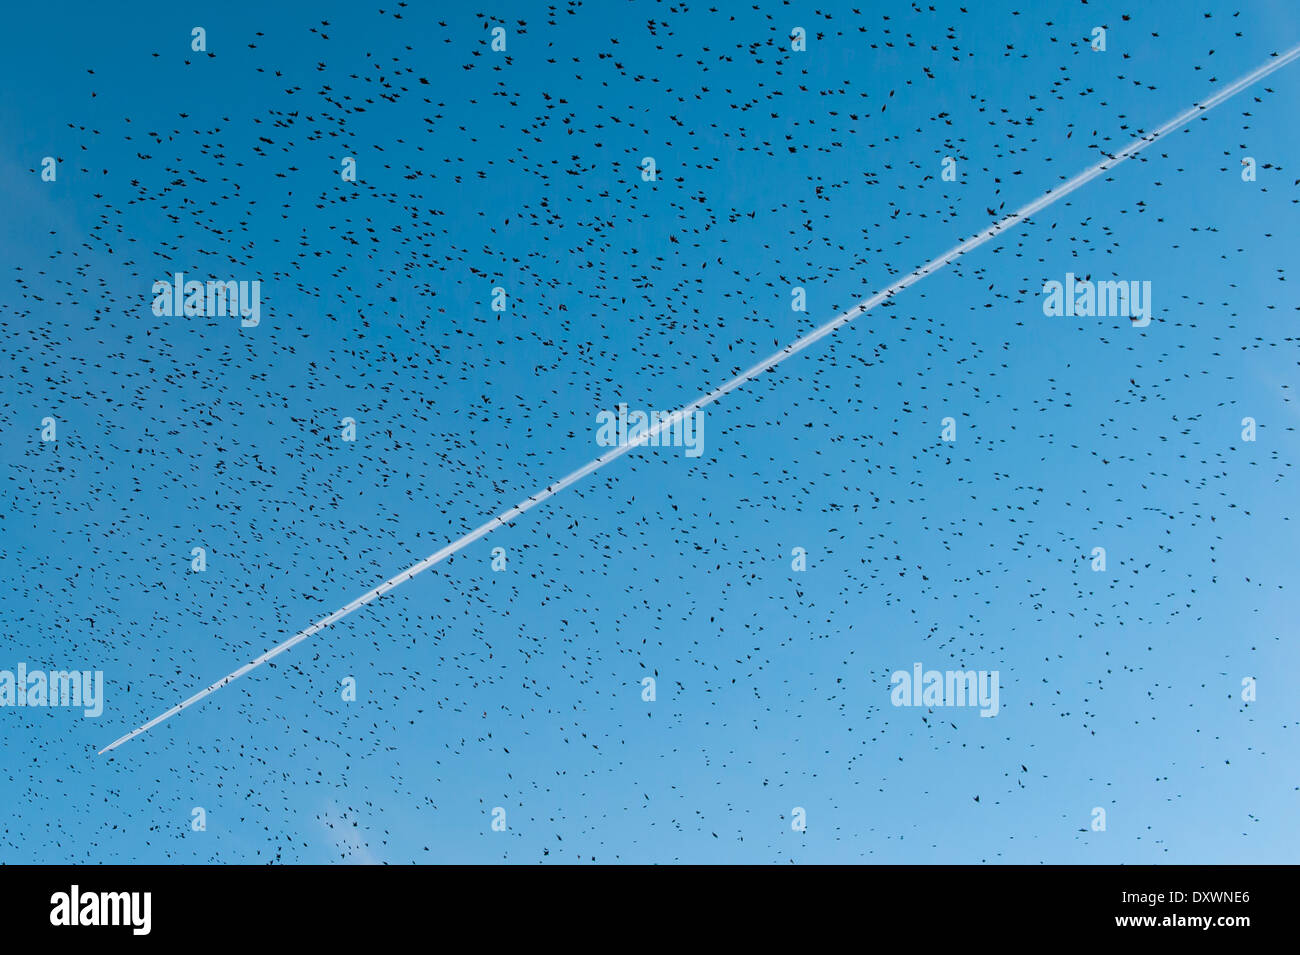 An aircraft contrail high above a flock of starlings - Stock Image